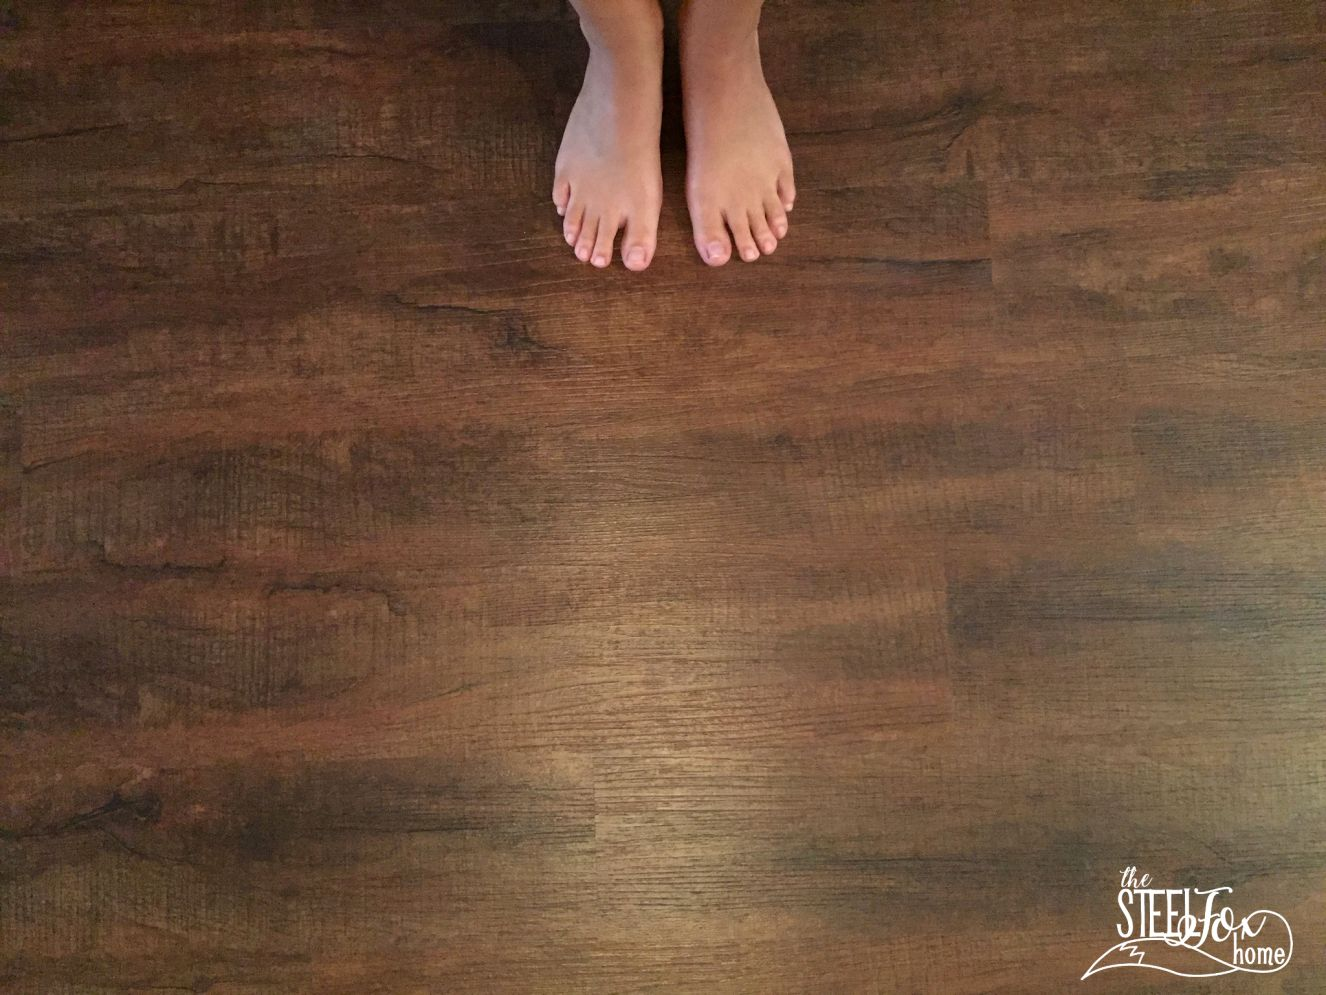 Luxury Vinyl Plank Wood Flooring Whole House Makeover Why We Choose Vinyl Pros And Cons And Our Hone Luxury Vinyl Plank Flooring Luxury Vinyl Plank Flooring